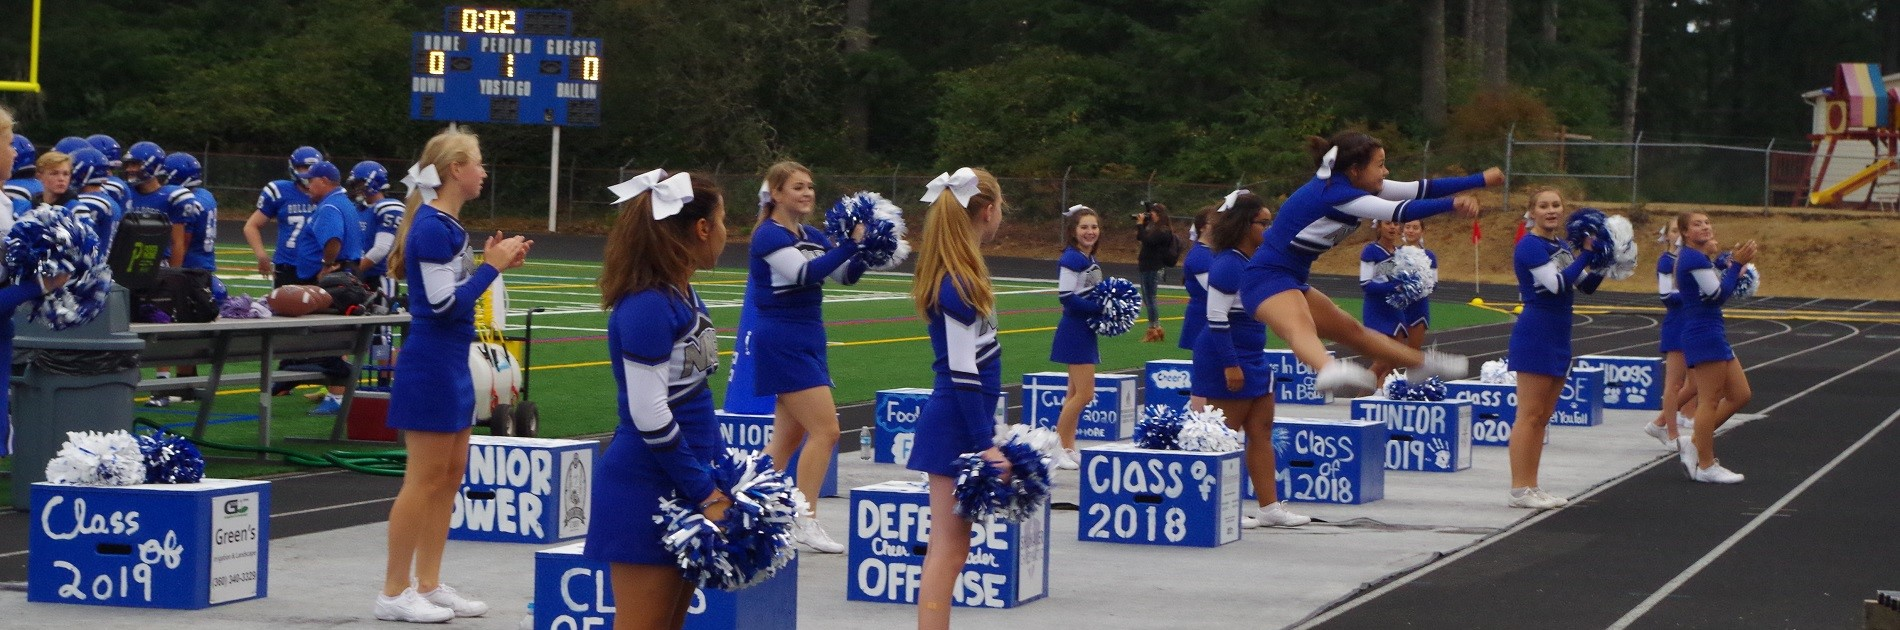 Cheerleaders lead the crowd in cheers from the sidelines.